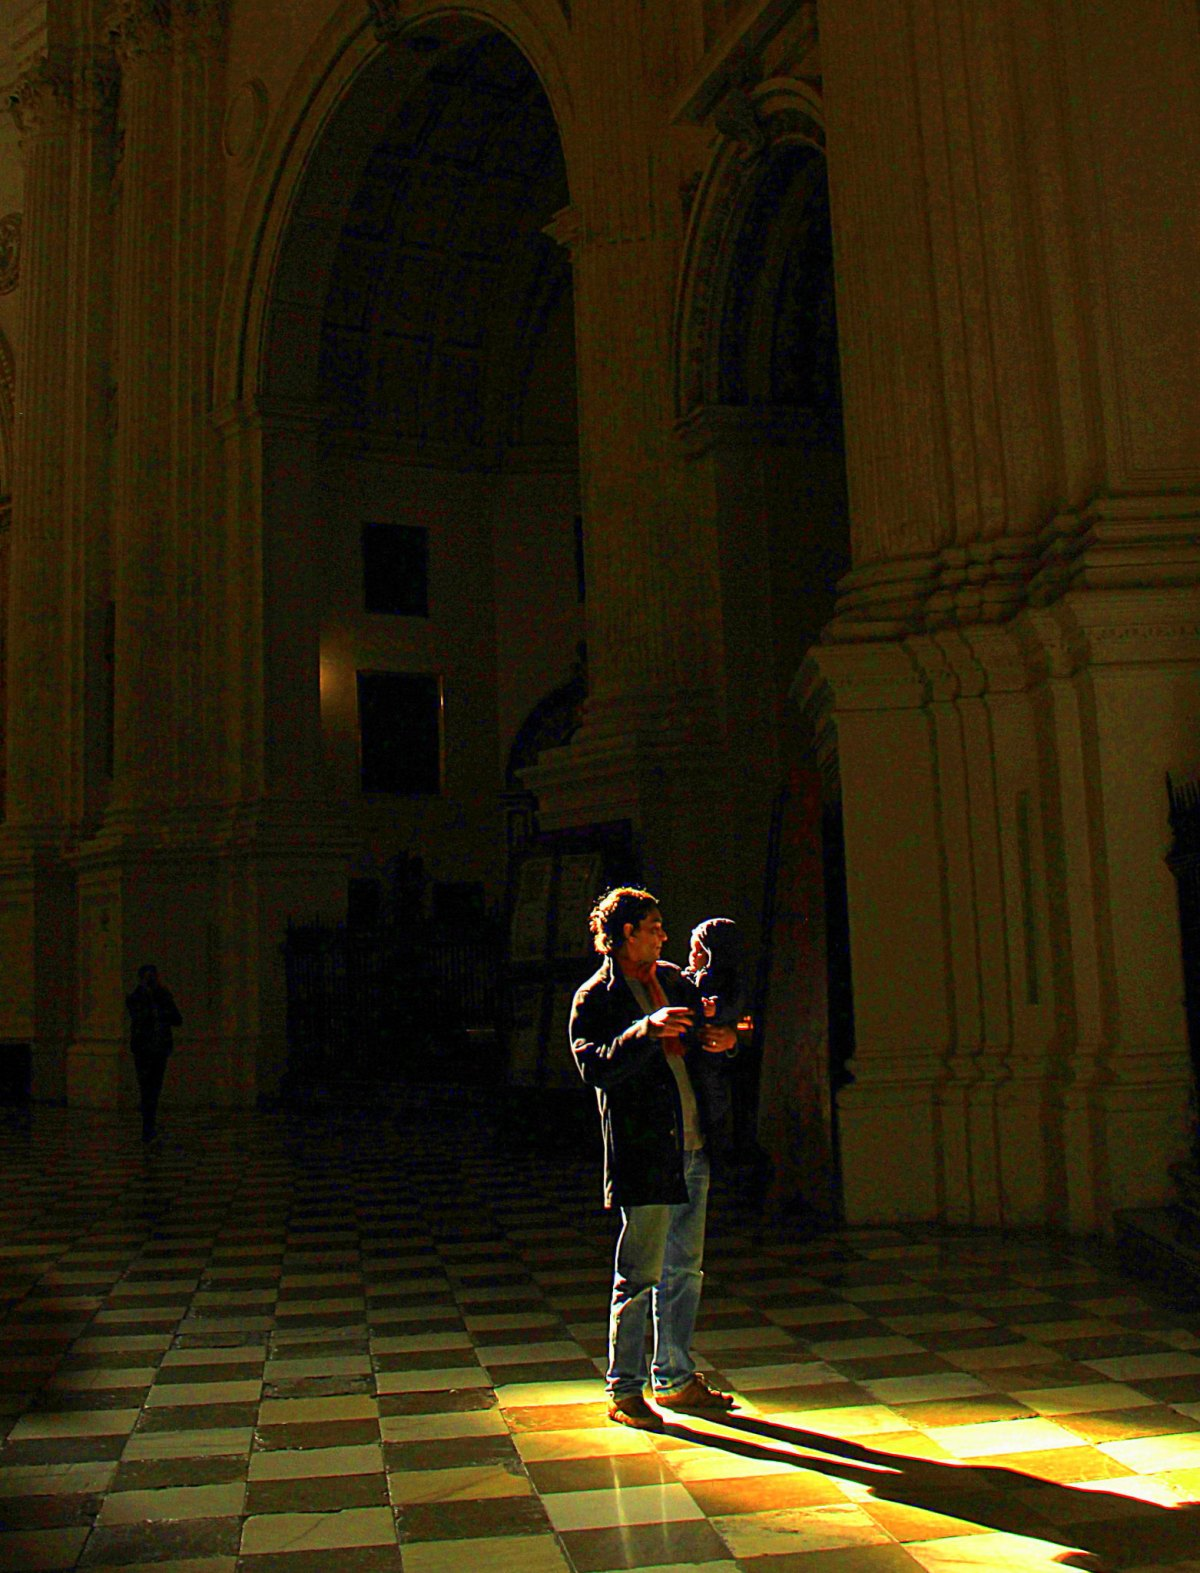 Light filters through the Granada Cathedral